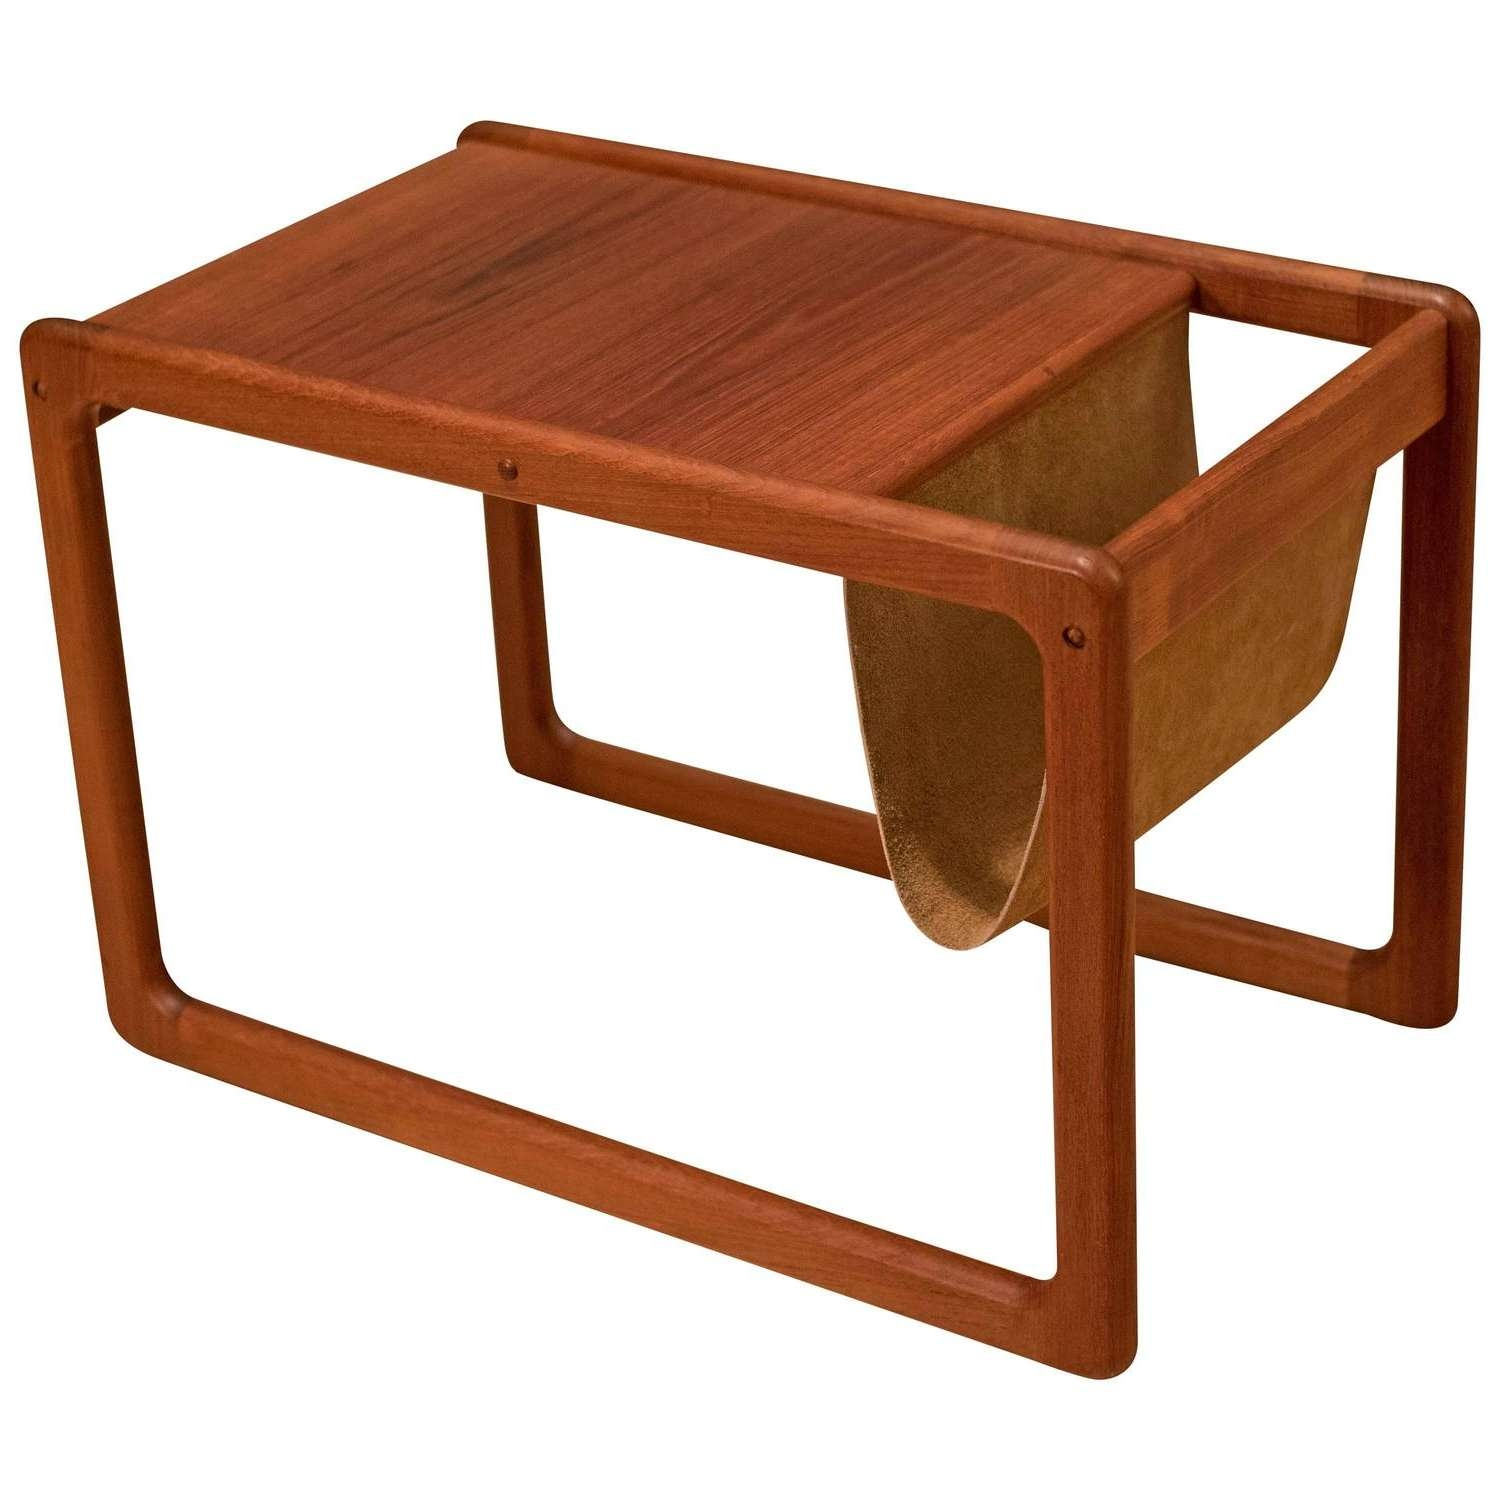 Vintage Danish Leather Magazine Rack Side Table At 1stdibs With Regard To Current Coffee Tables With Magazine Rack (View 7 of 20)